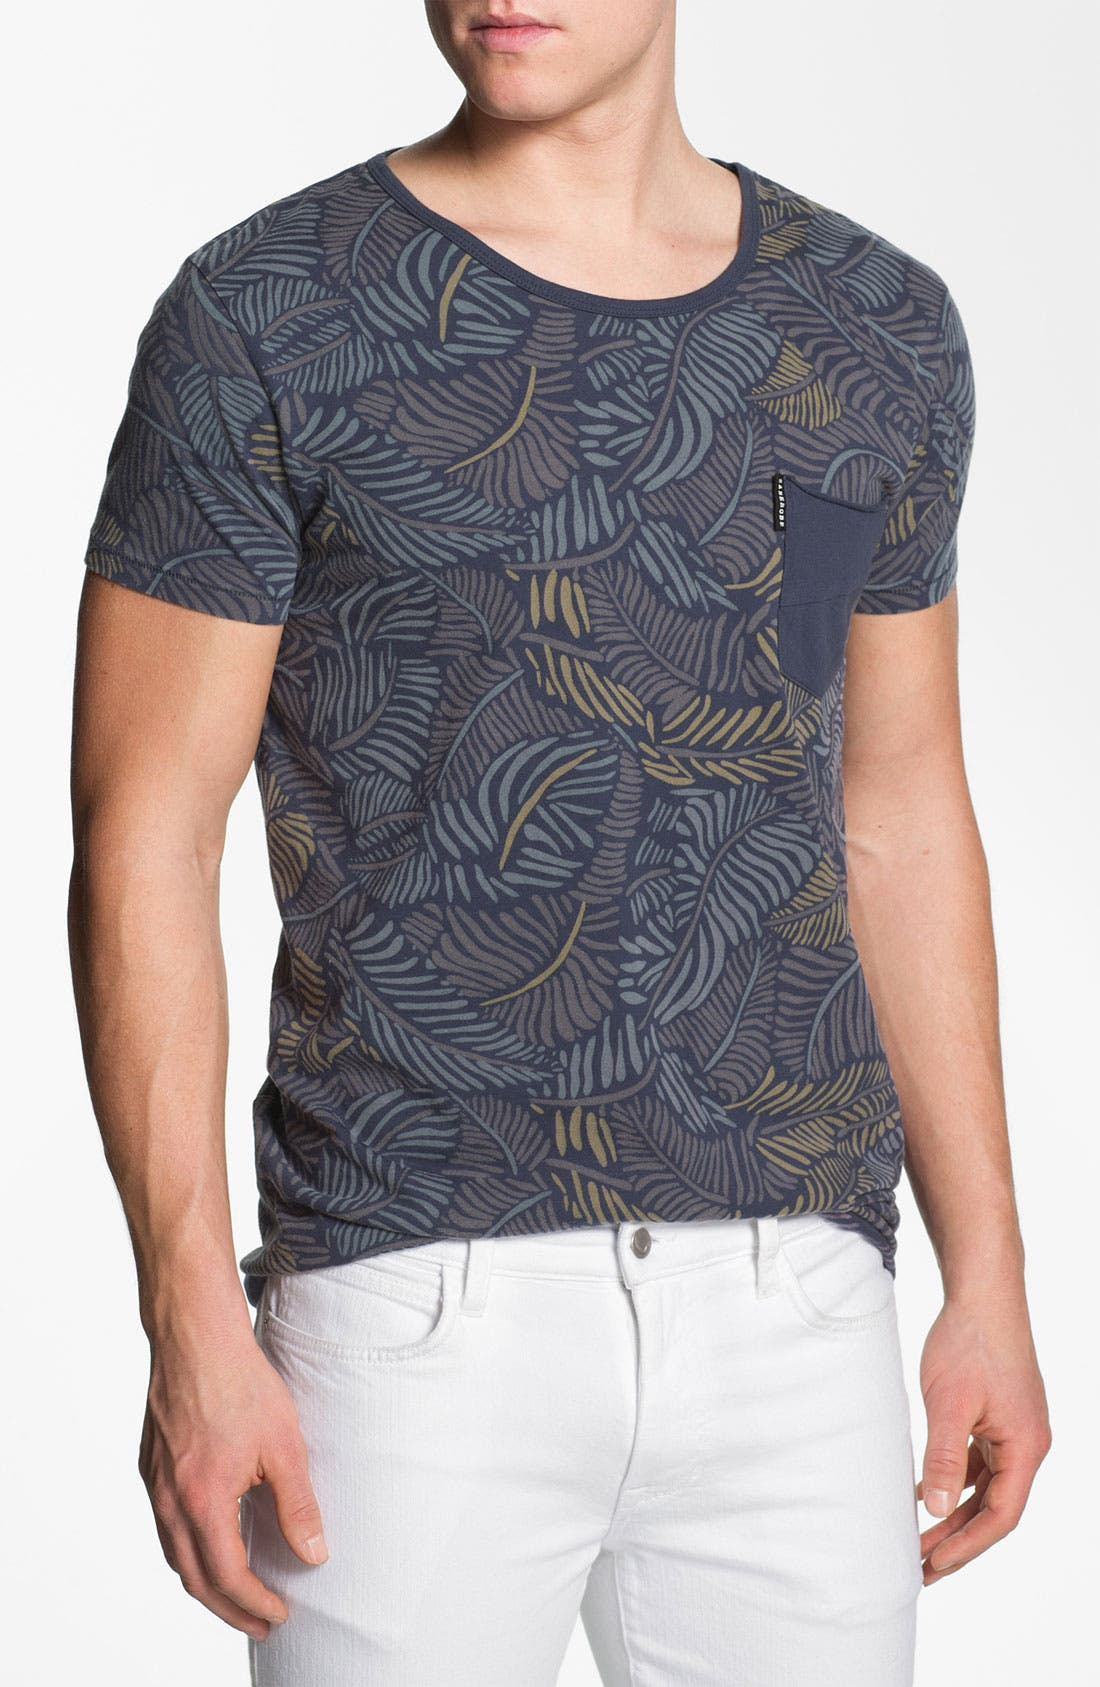 Alternate Image 1 Selected - Zanerobe 'Poleho' Allover Print Pocket T-Shirt